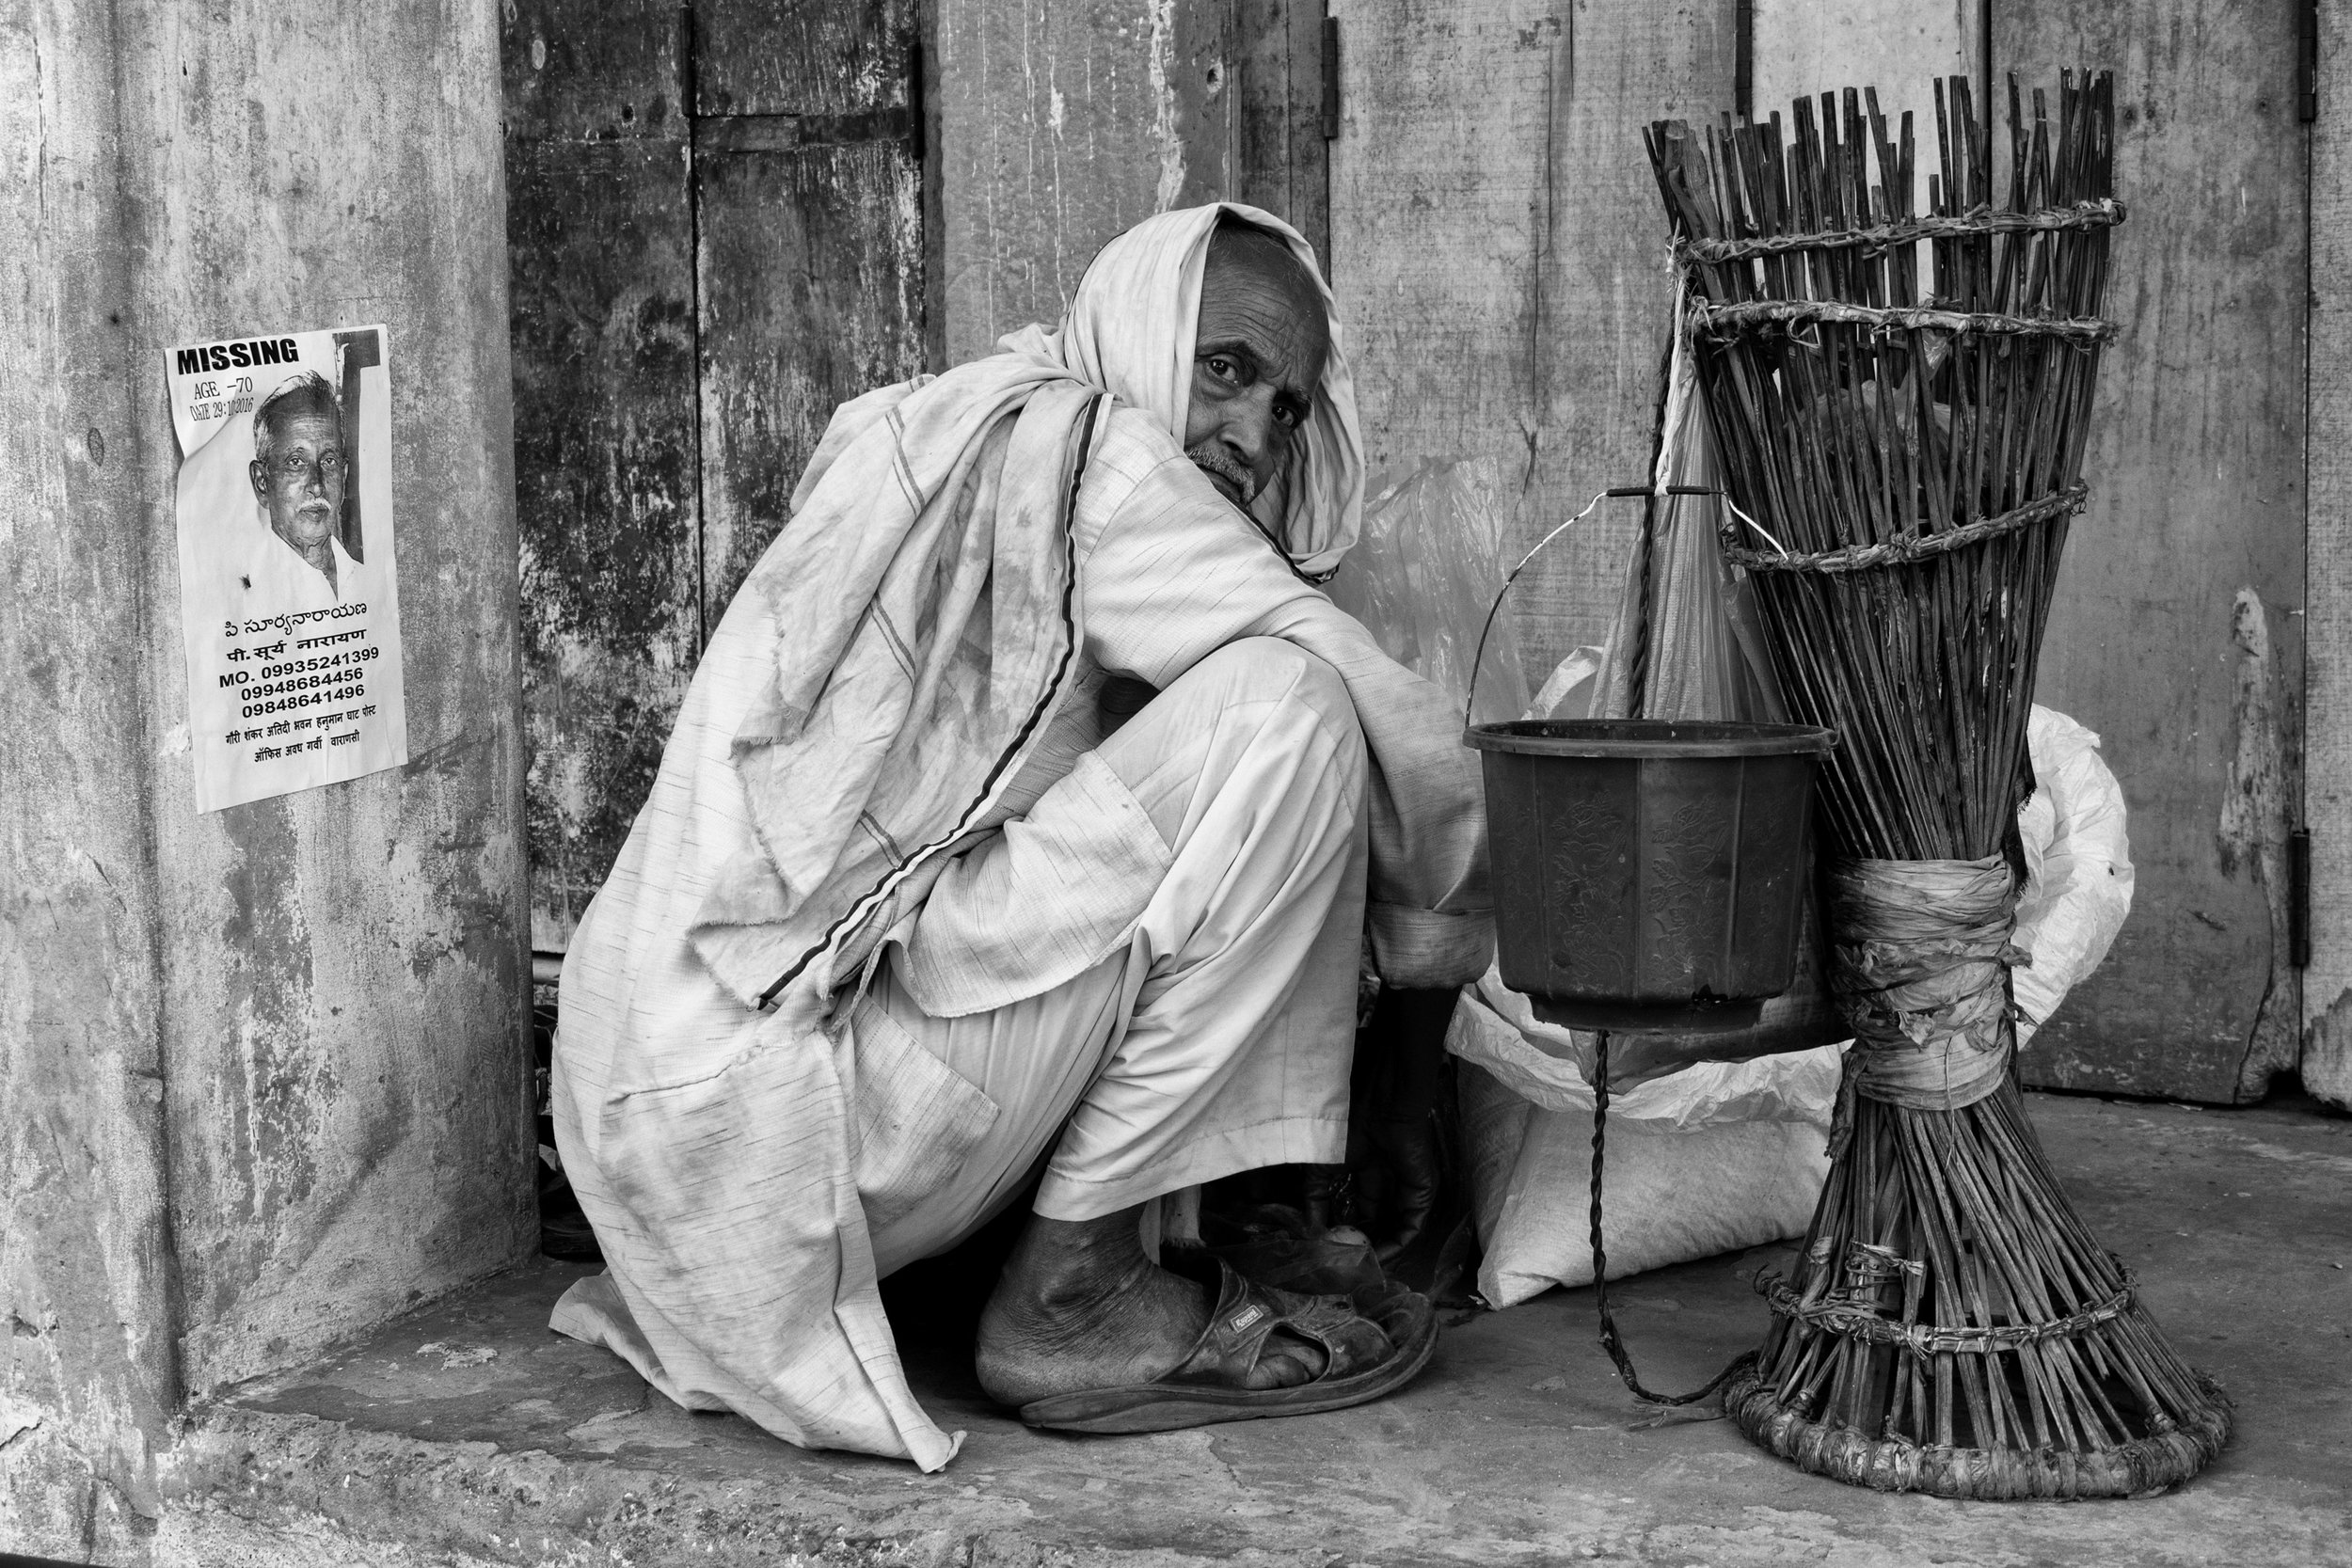 Man Crouched Down on Streets on Varanasi in Black and White - Varanasi, India - Copyright 2016 Ralph Velasco.jpg